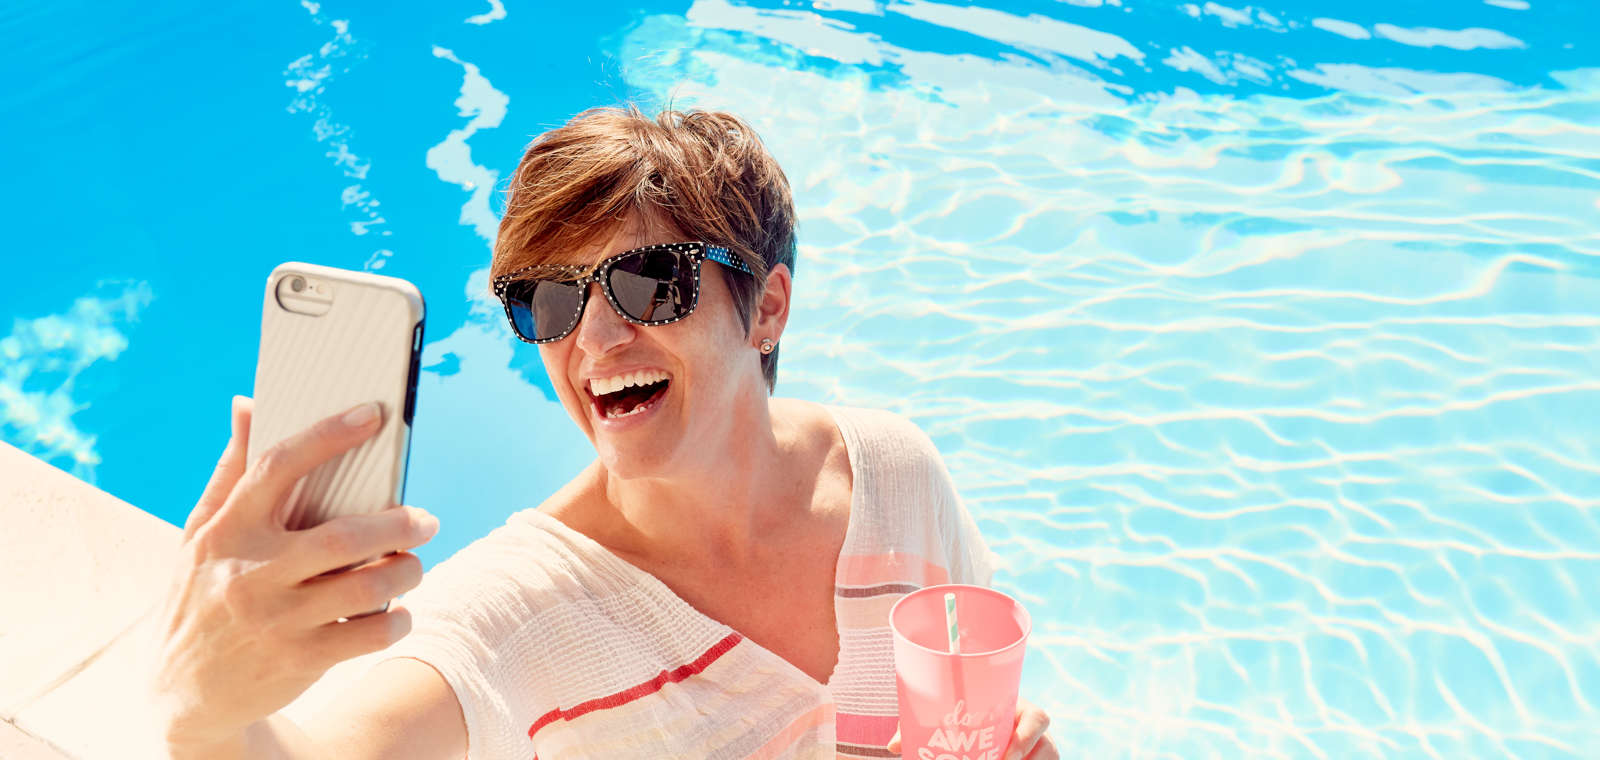 Woman Taking Selfie By Pool